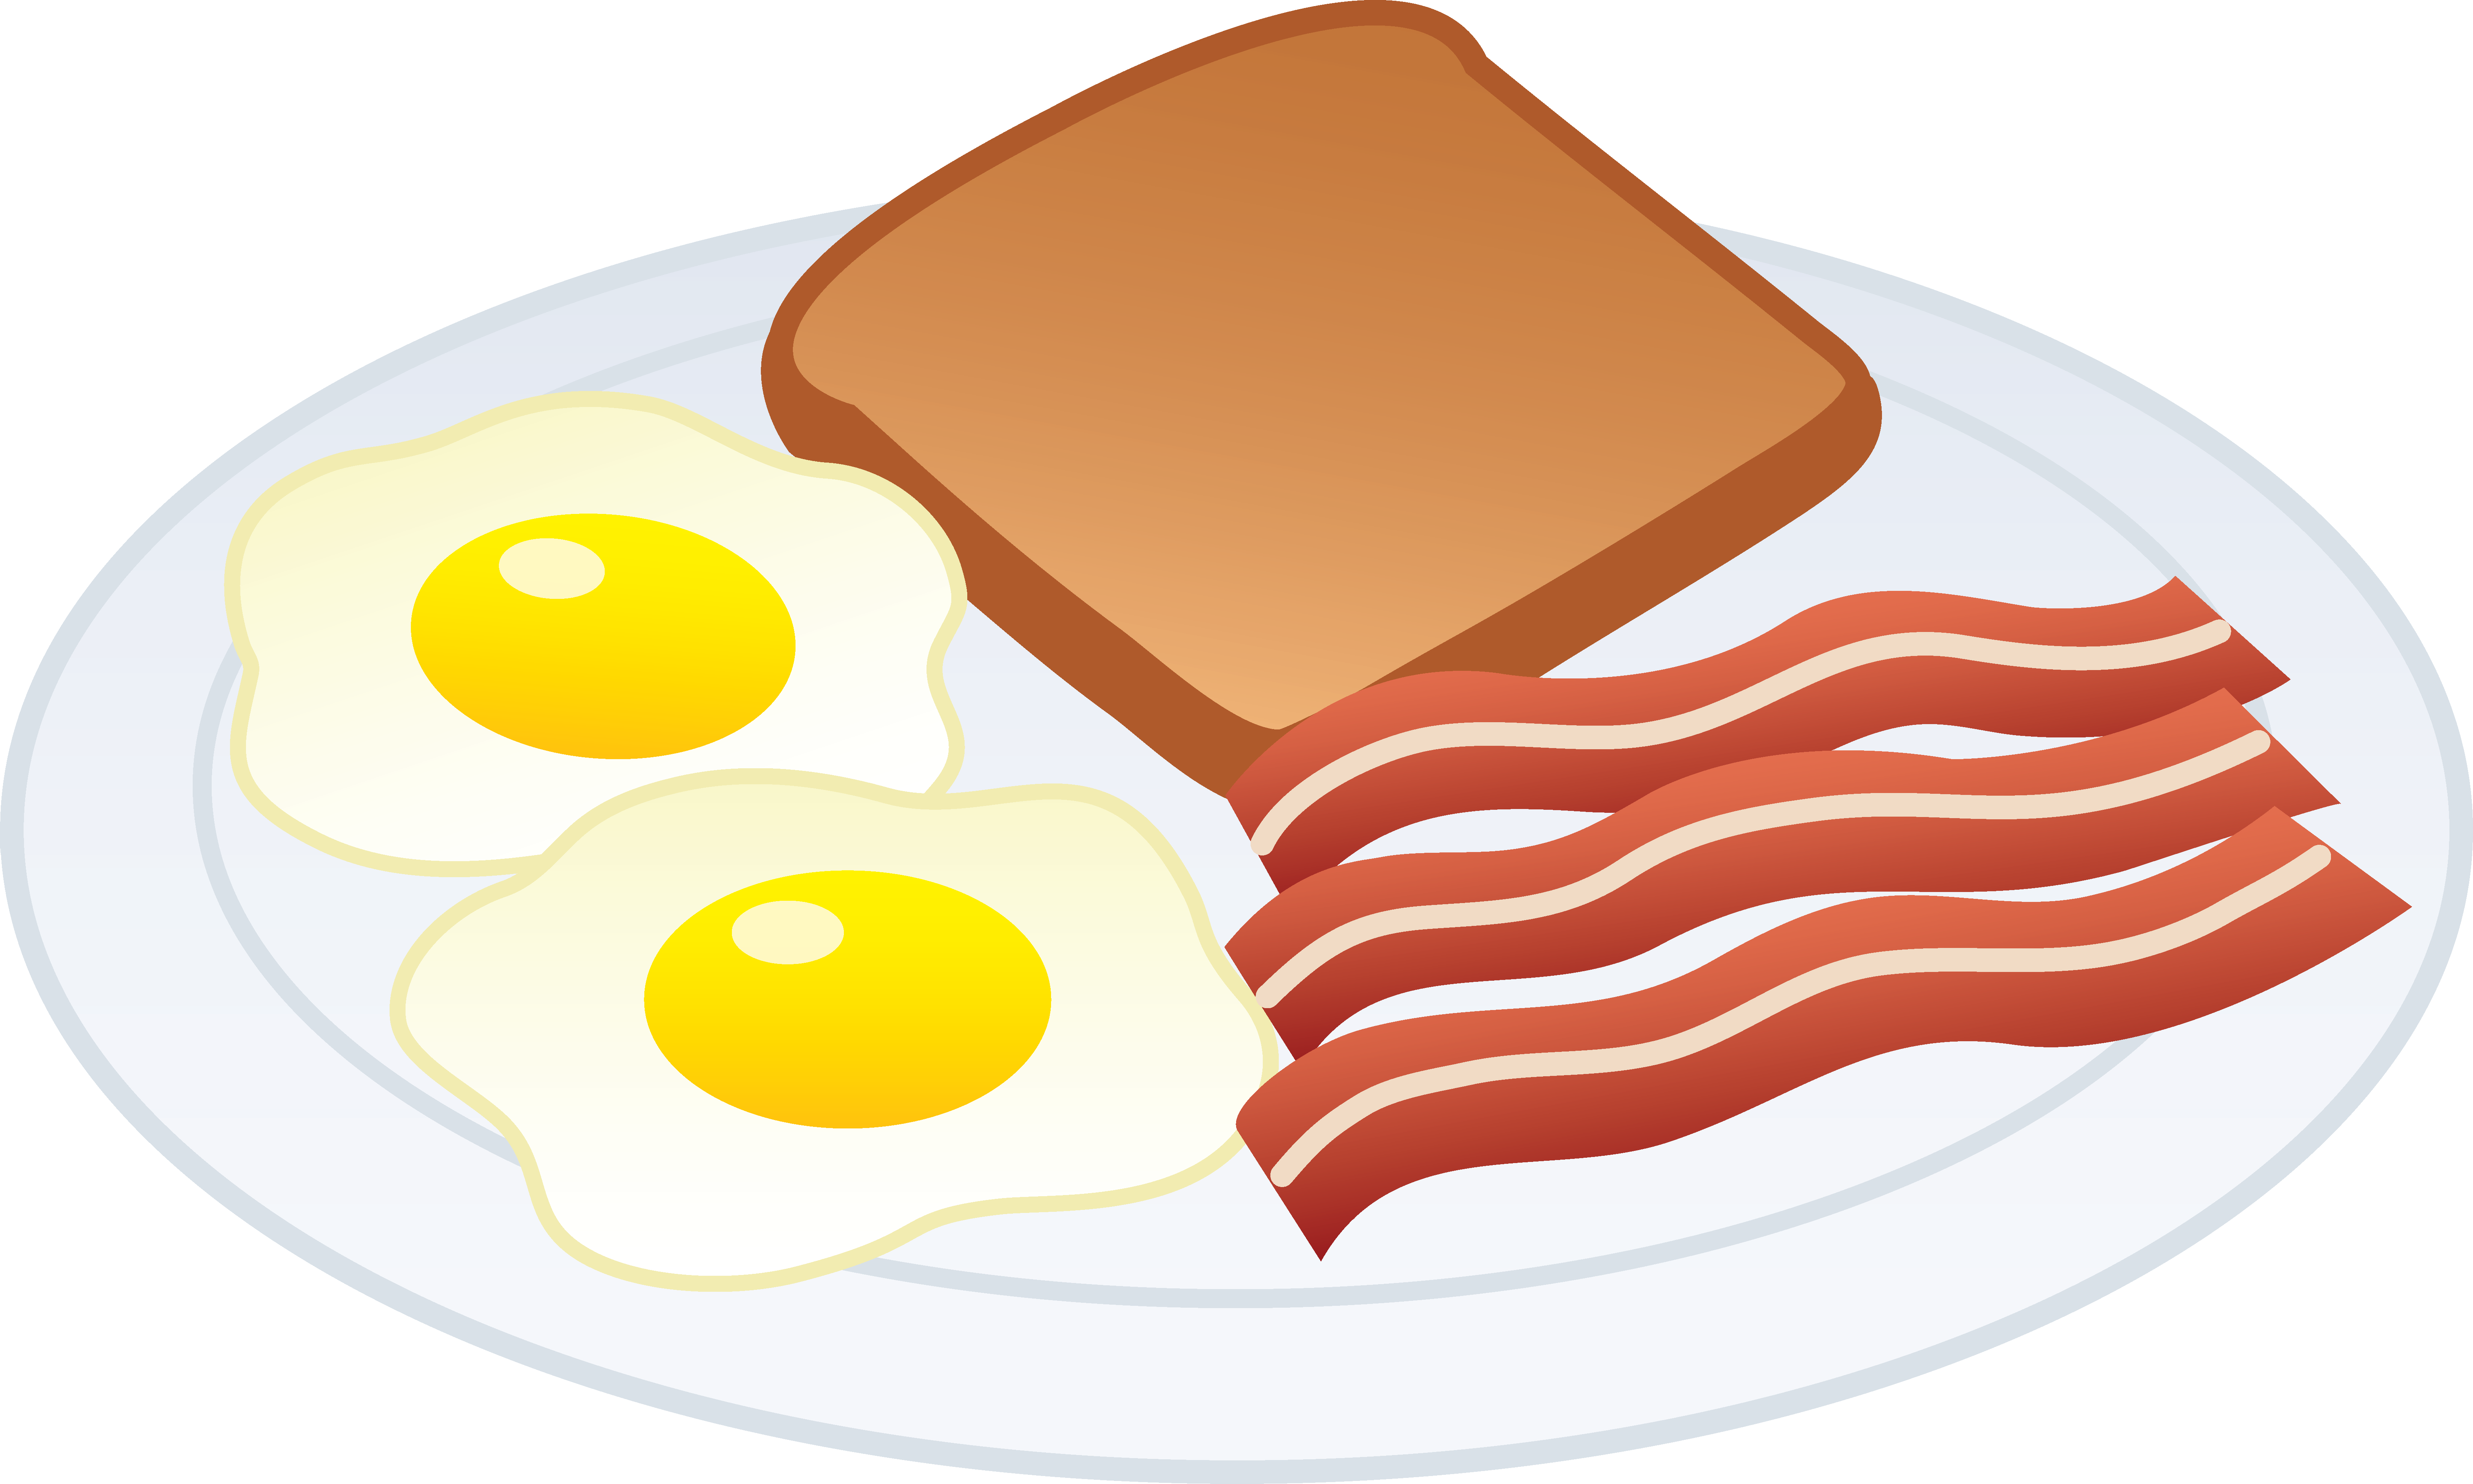 Woman cooking vector images amp pictures becuo - Clip Art Free Breakfast Of Eggs And Bacon